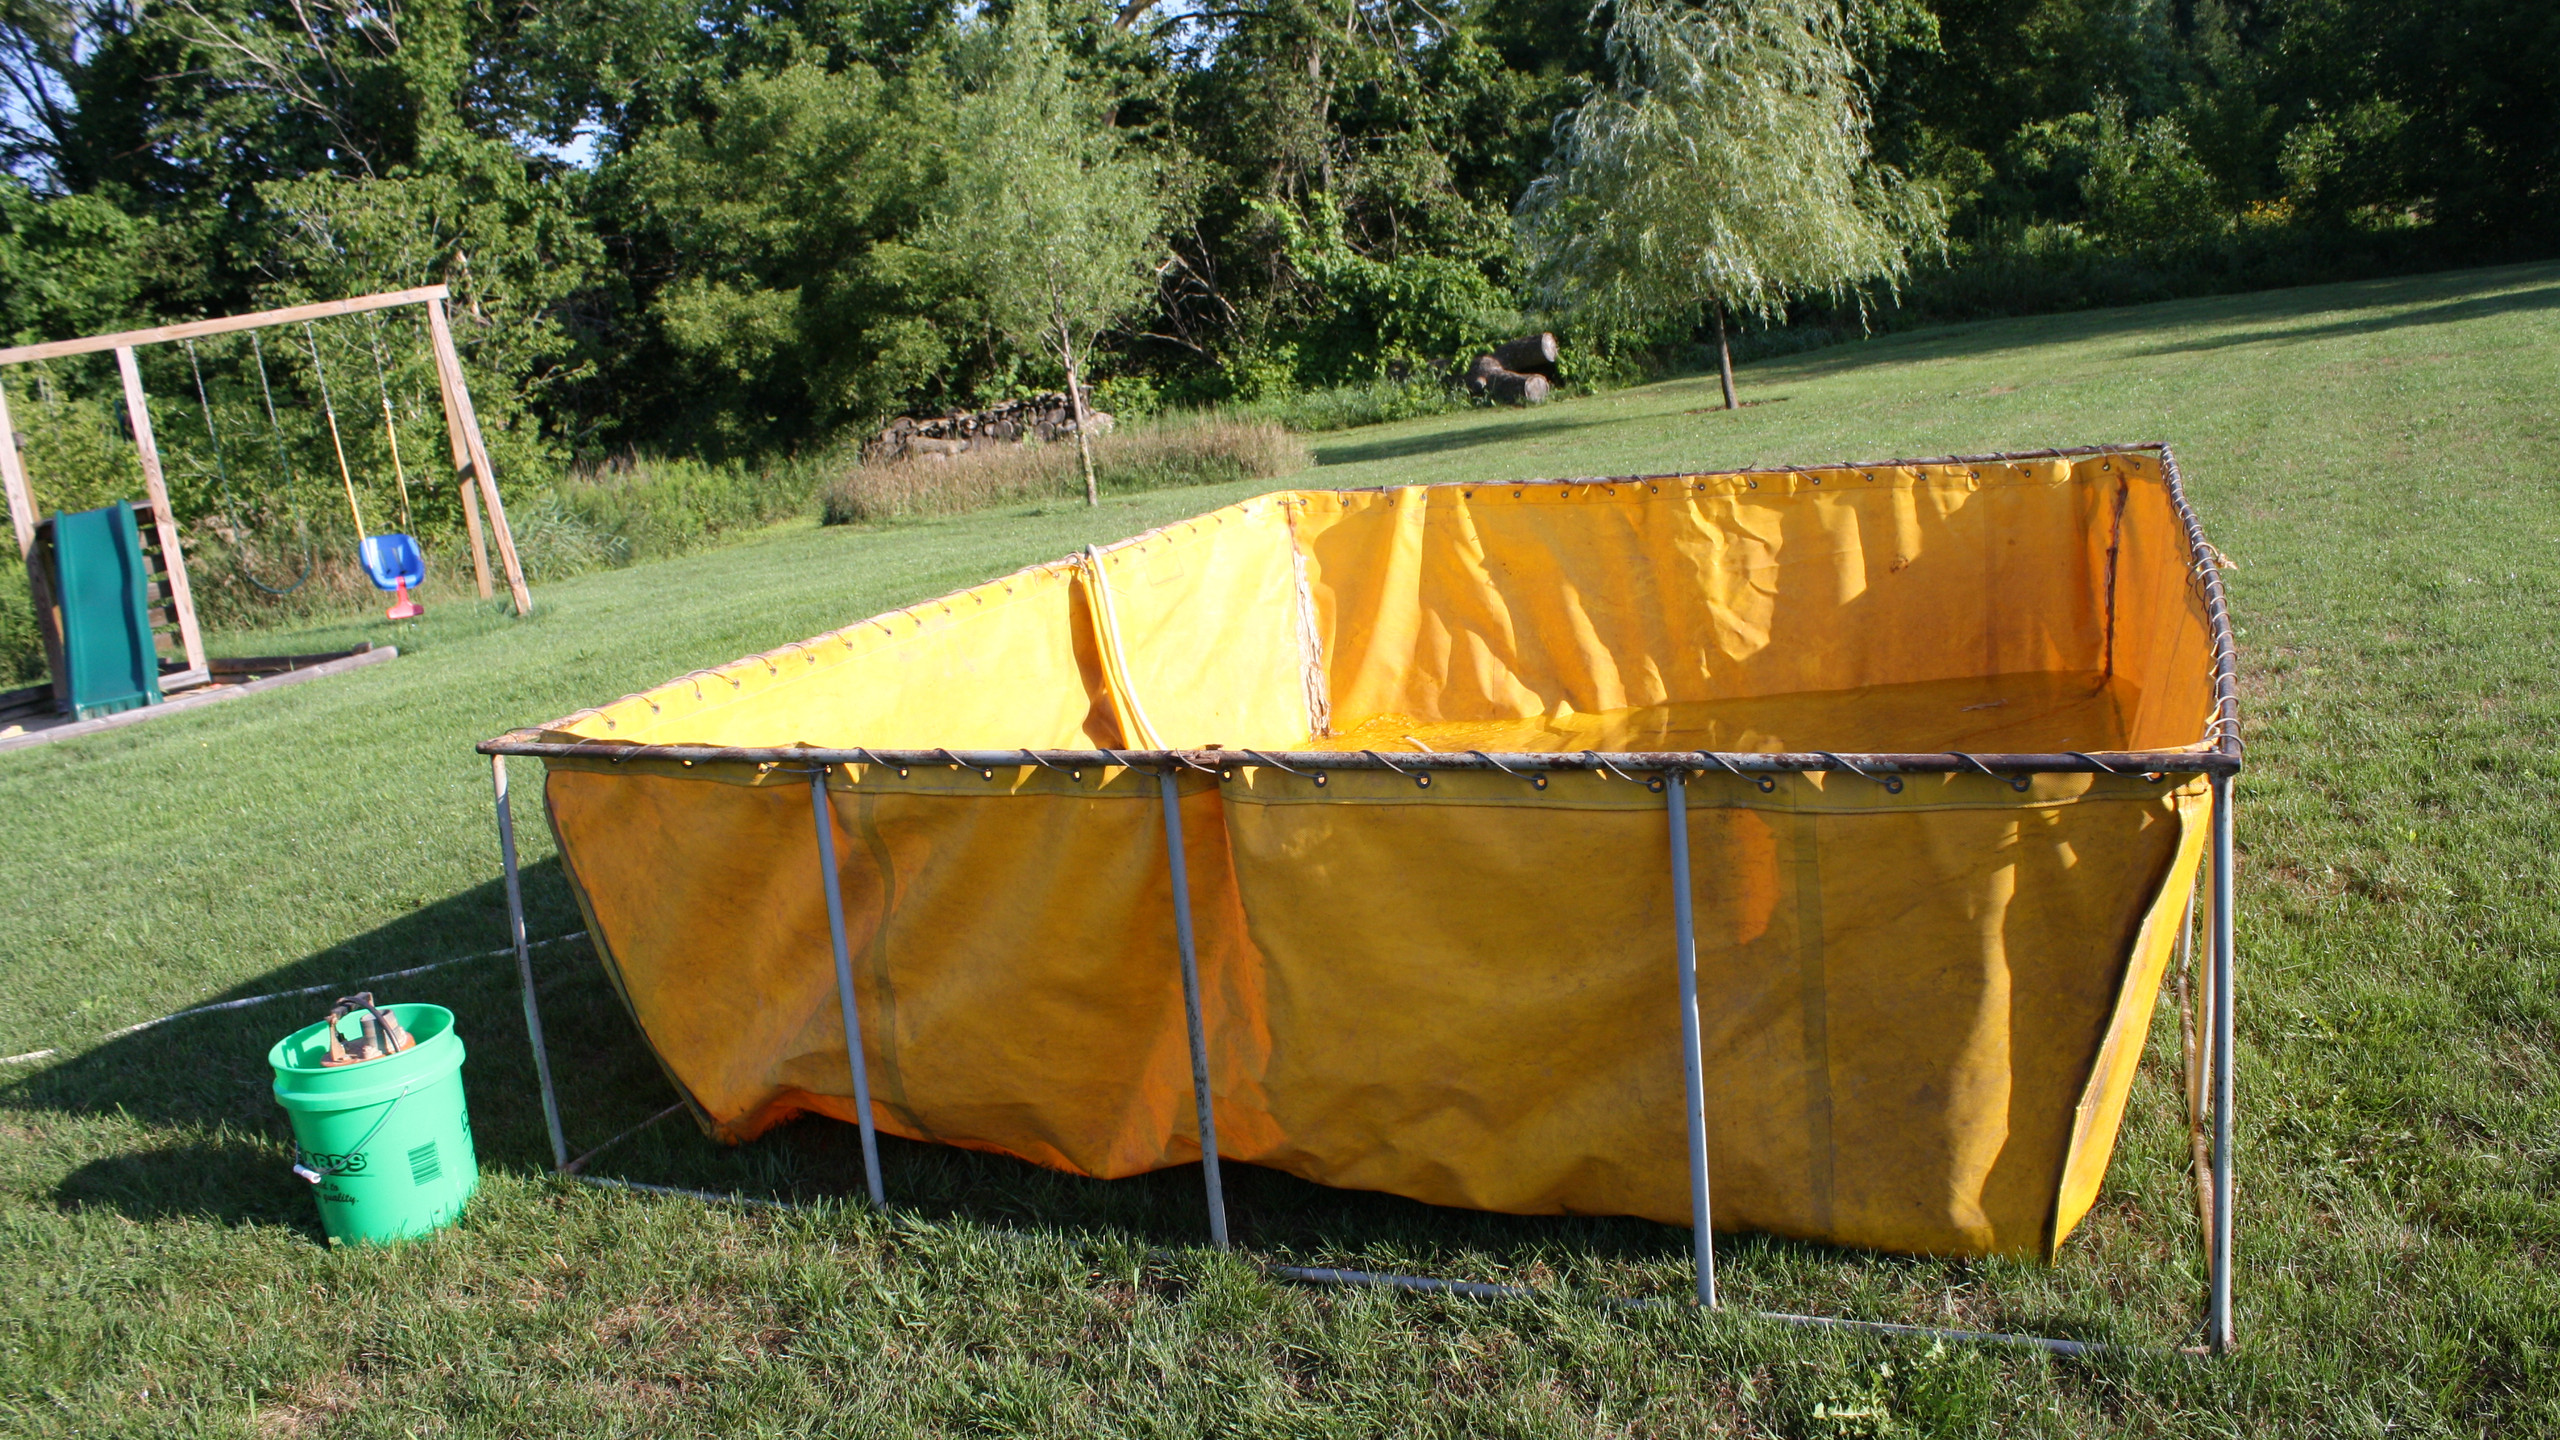 The first step in our process is to set up our portable holding tanks and begin filling them from the clients source while we build the pool.